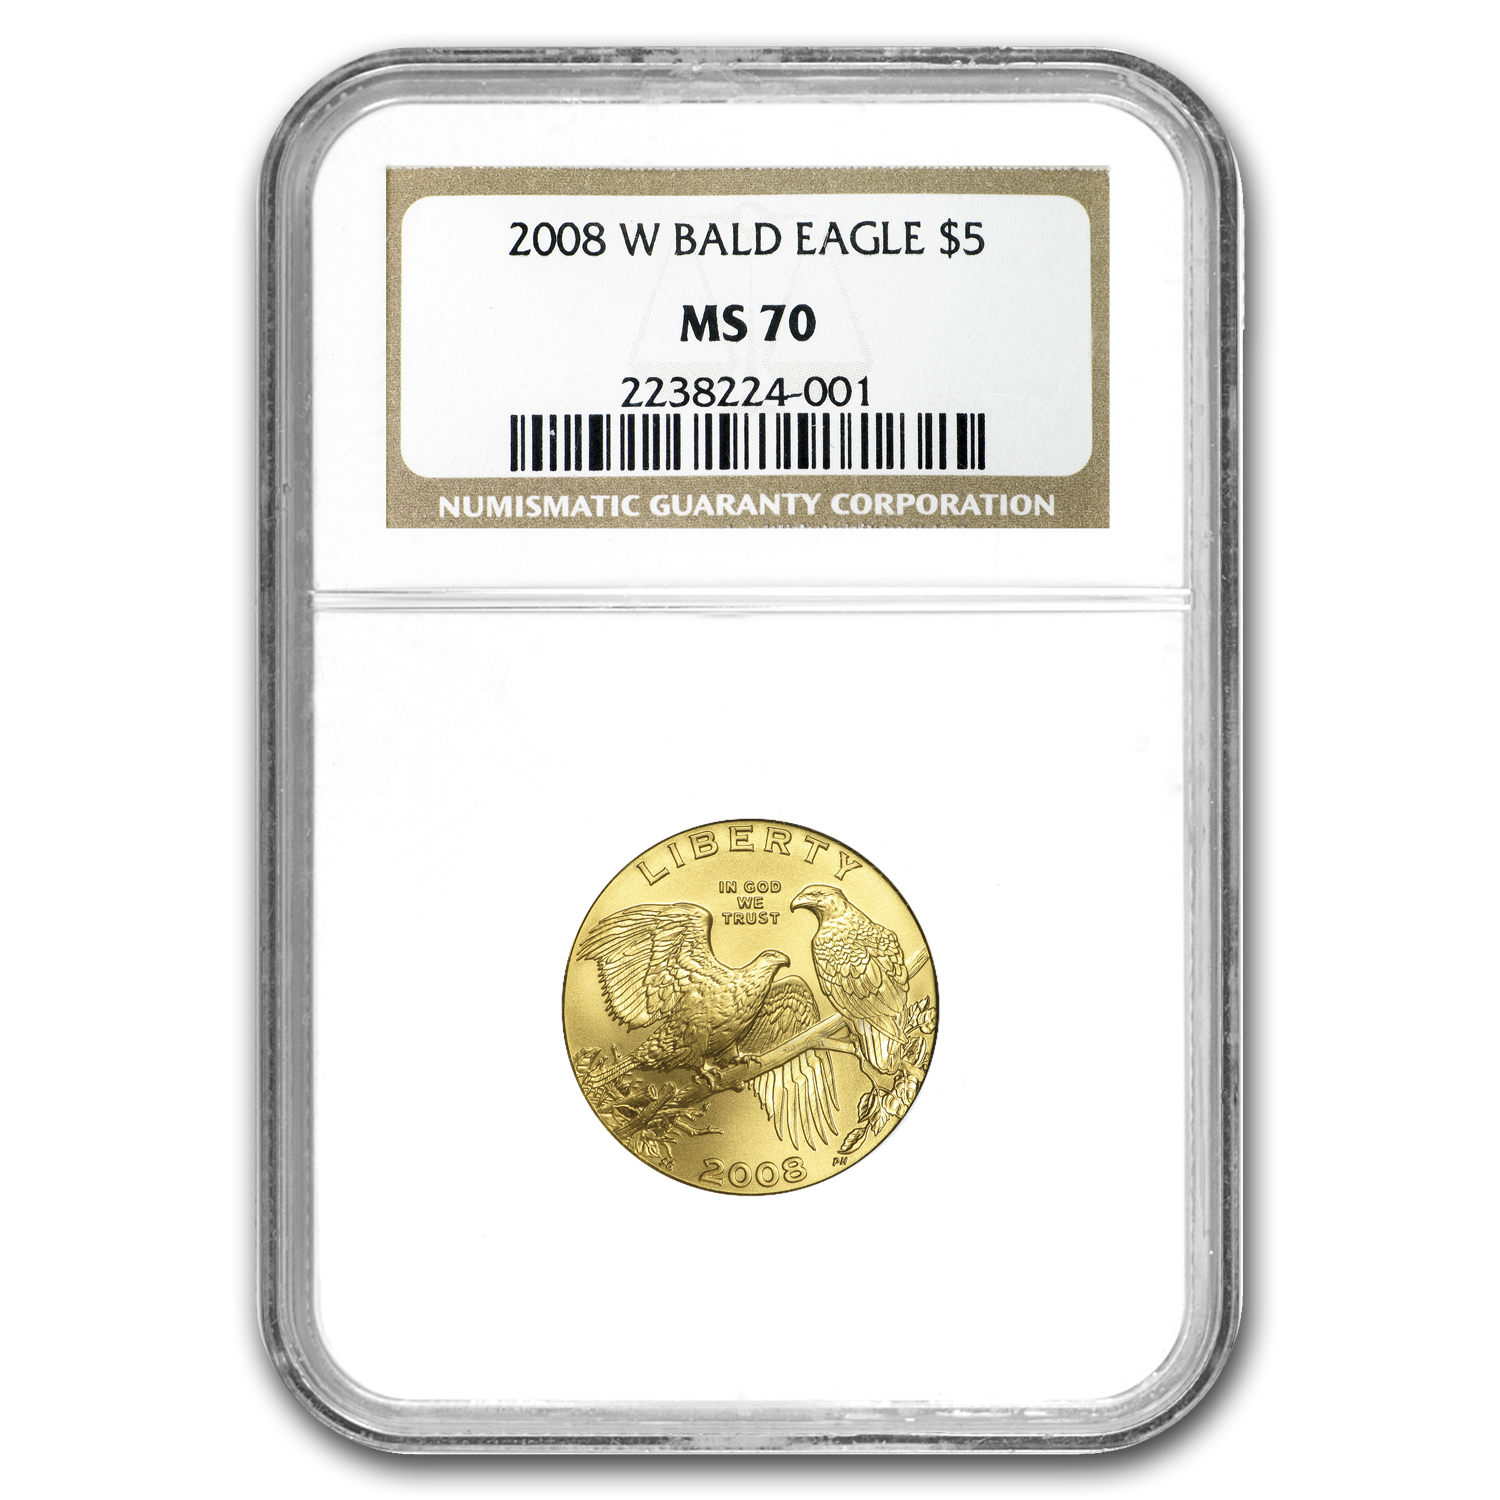 2008-W $5 Gold Commemorative Bald Eagle NGC MS-70